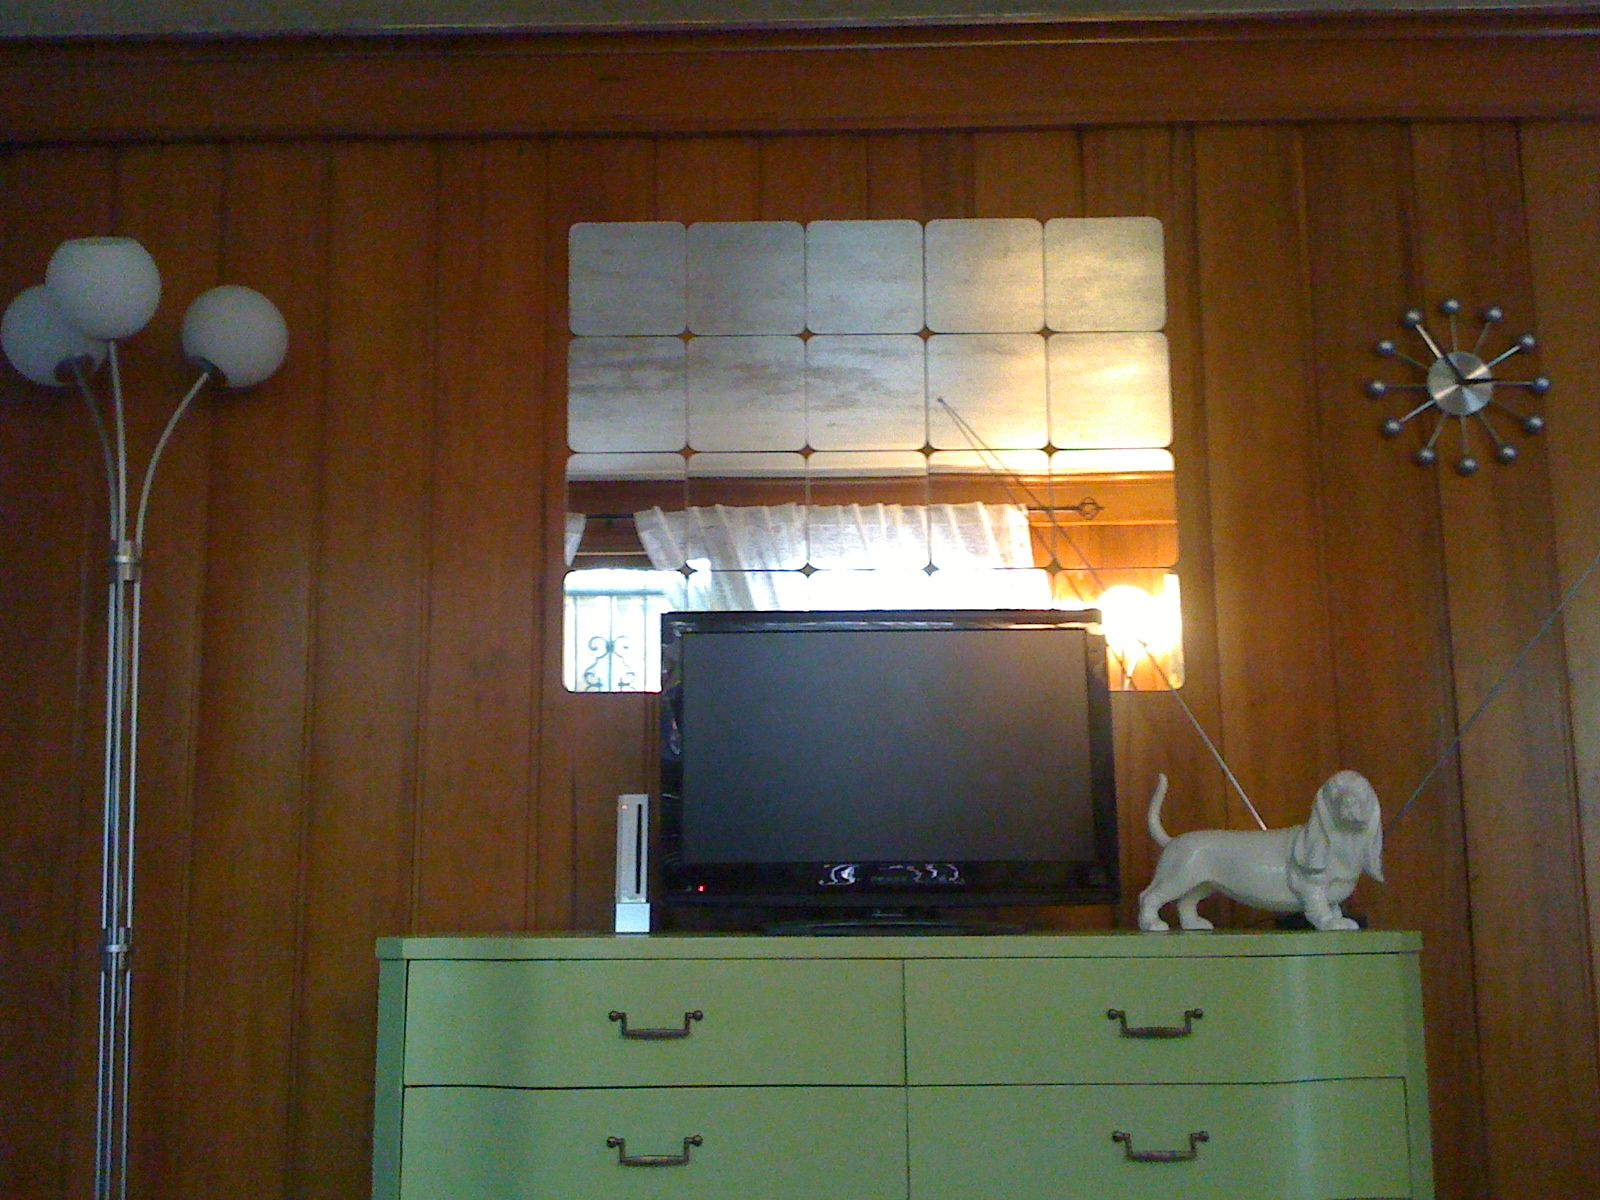 The Wood Paneling Was Installed By My Landlords Grandparents In